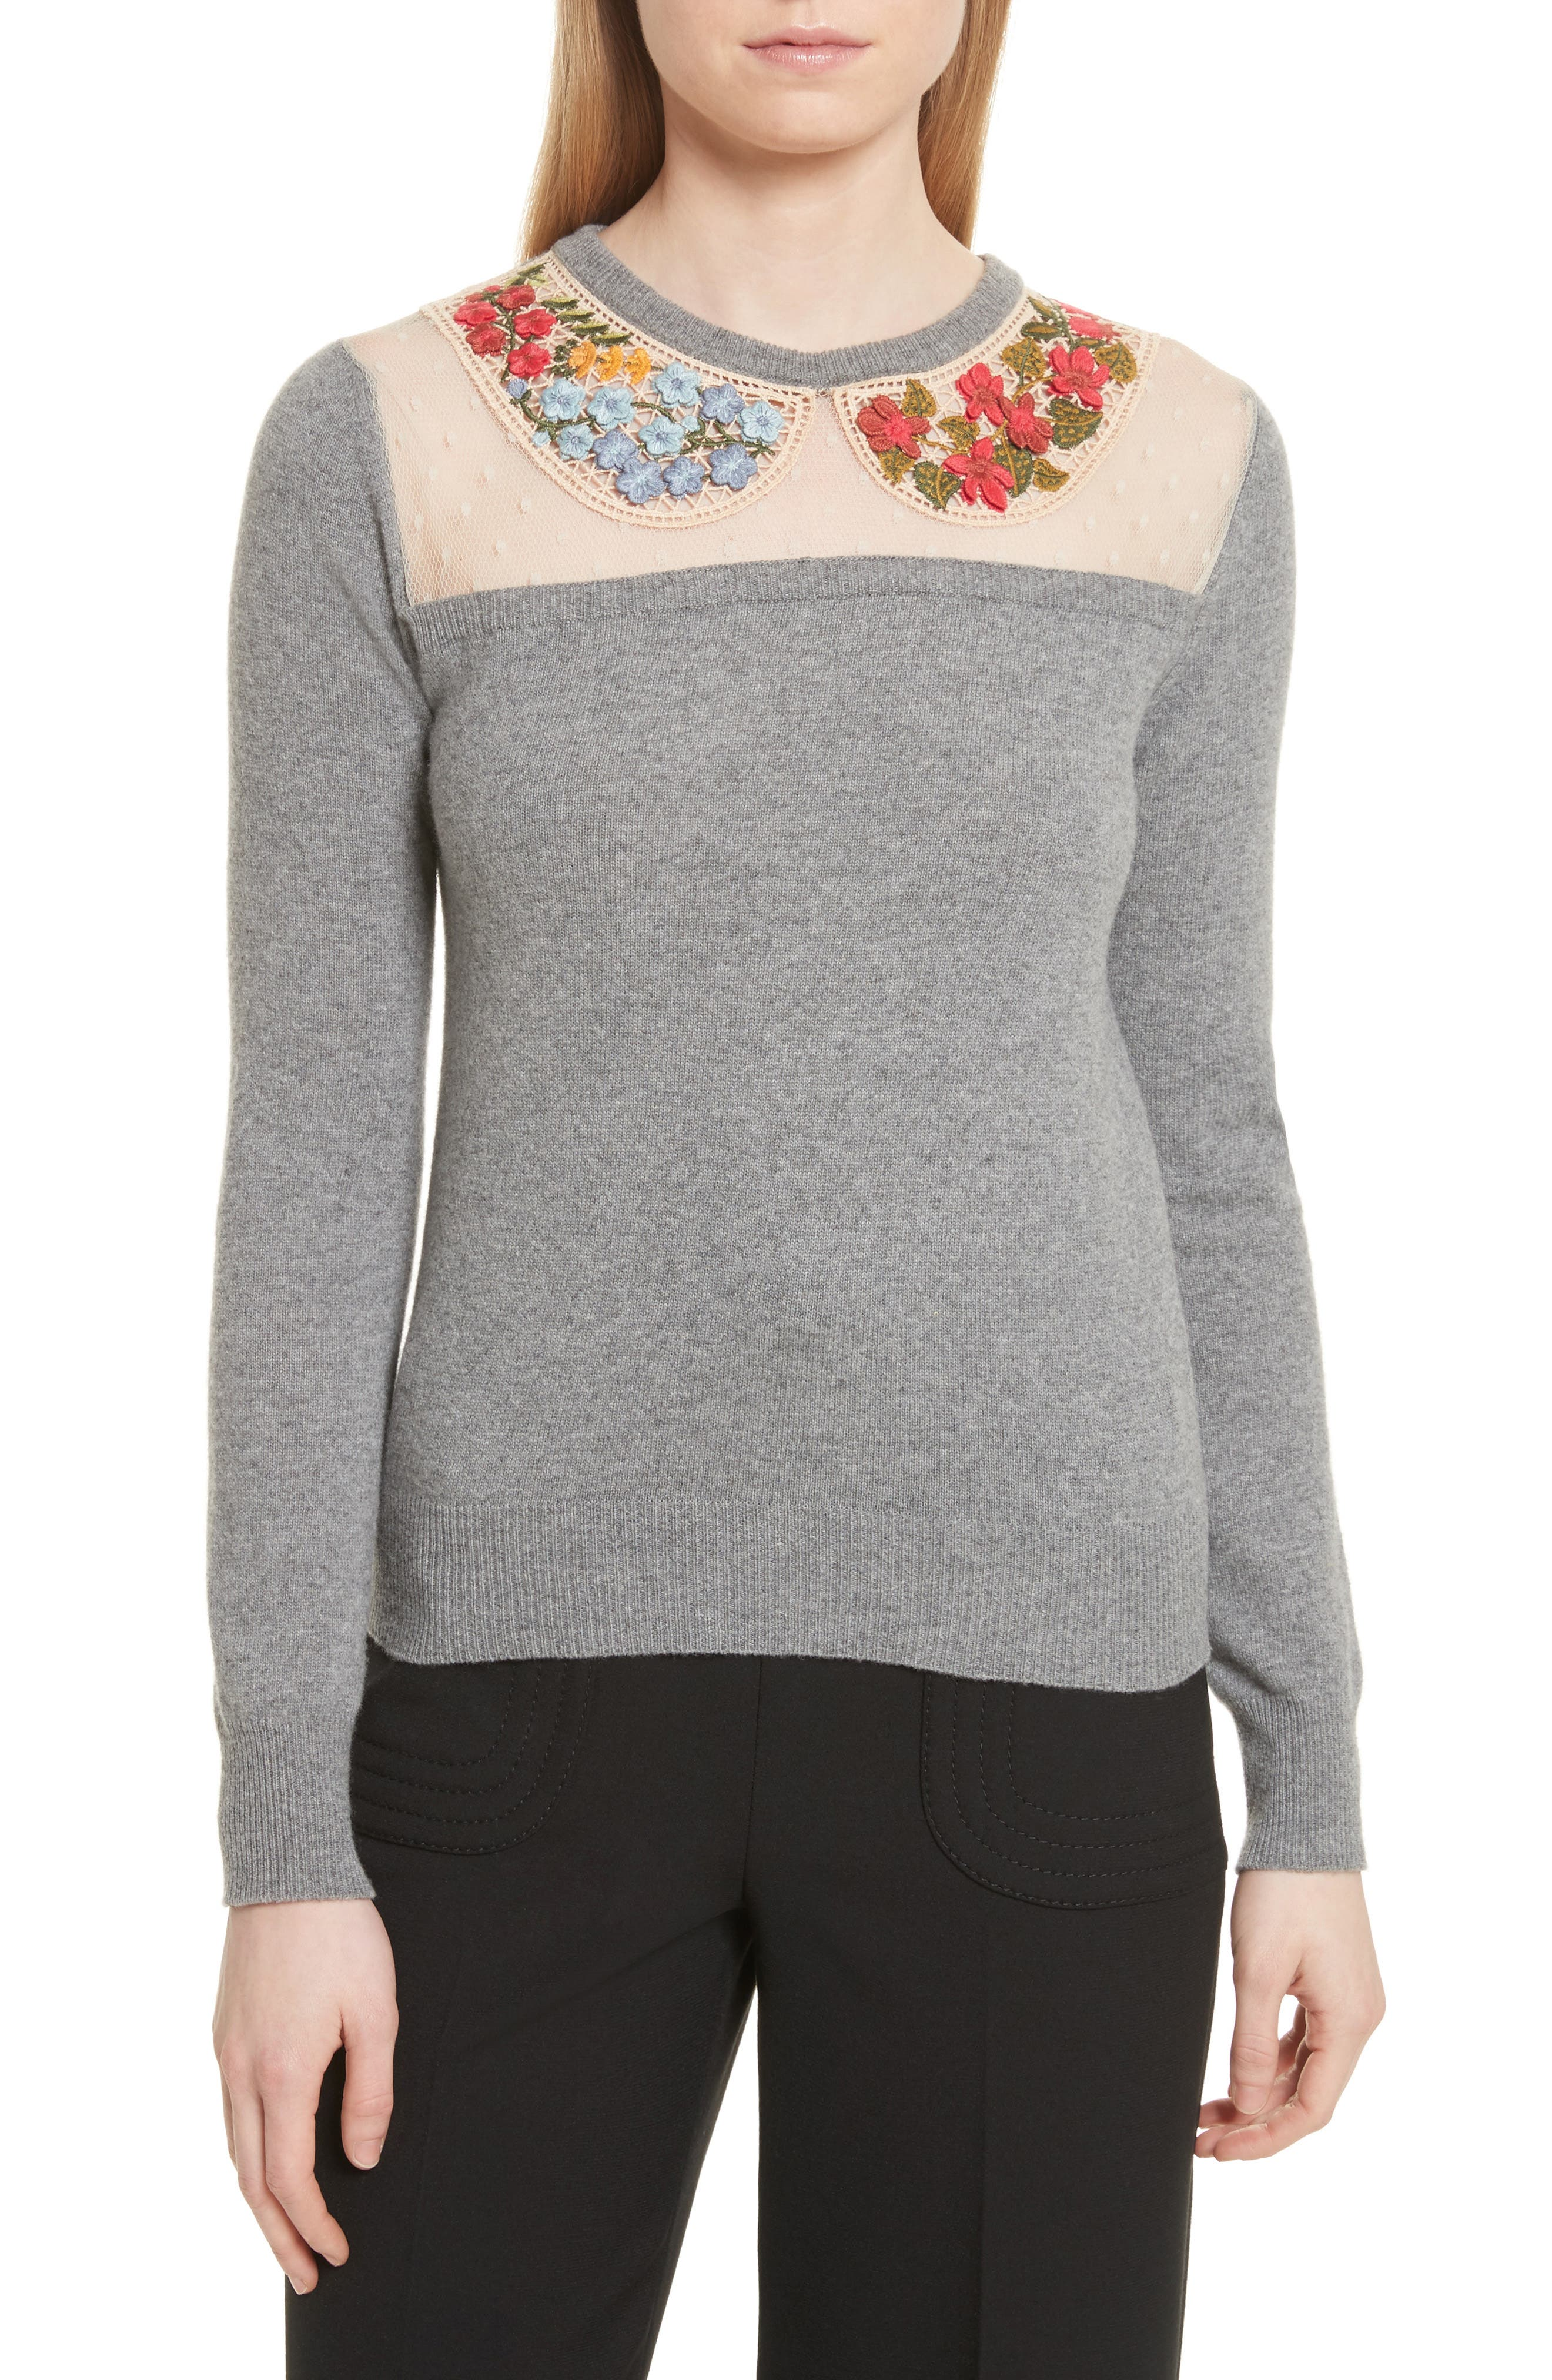 Main Image - RED Valentino Macramé & Floral Embellished Wool Sweater